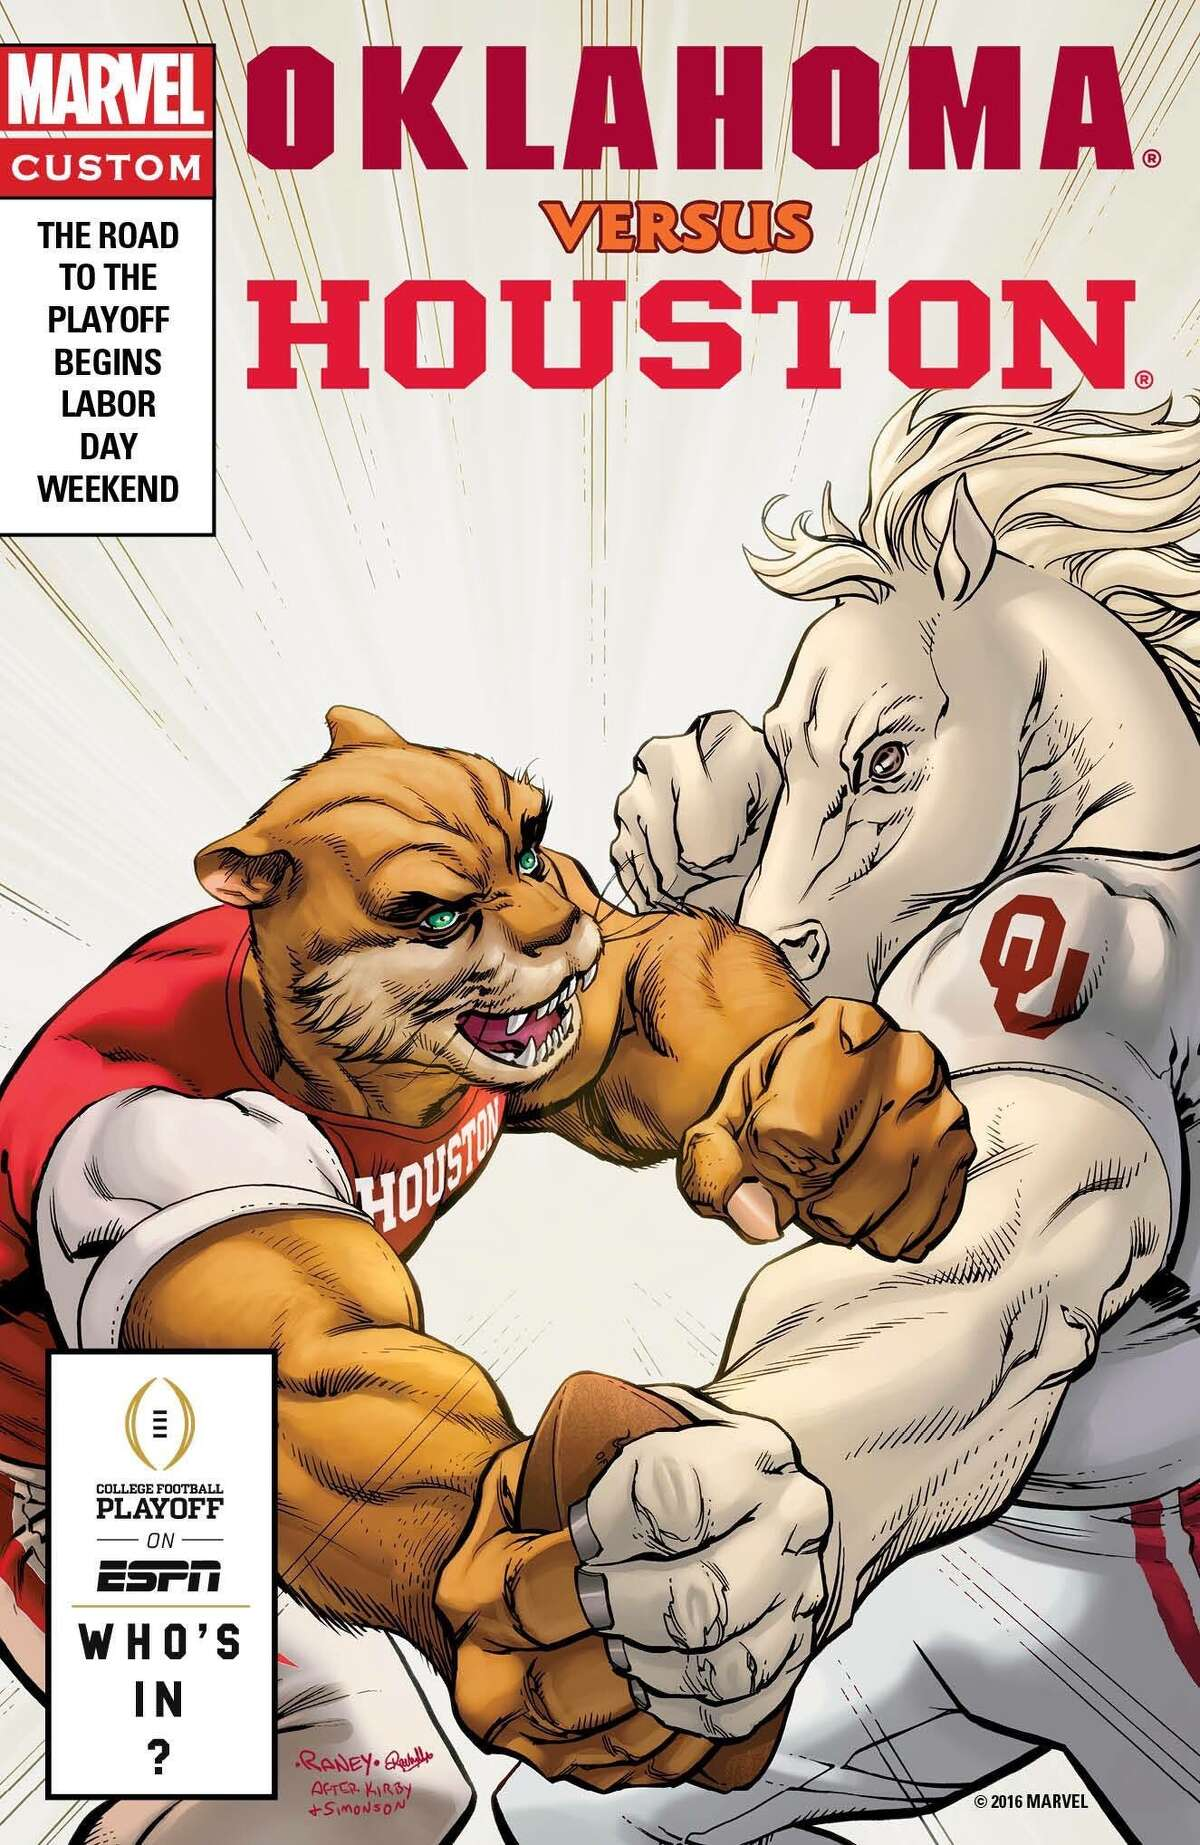 The Houston/Oklahoma football game at NRG Stadium on Sept. 3 is featured on a comic book cover promotion by ESPN and Marvel.